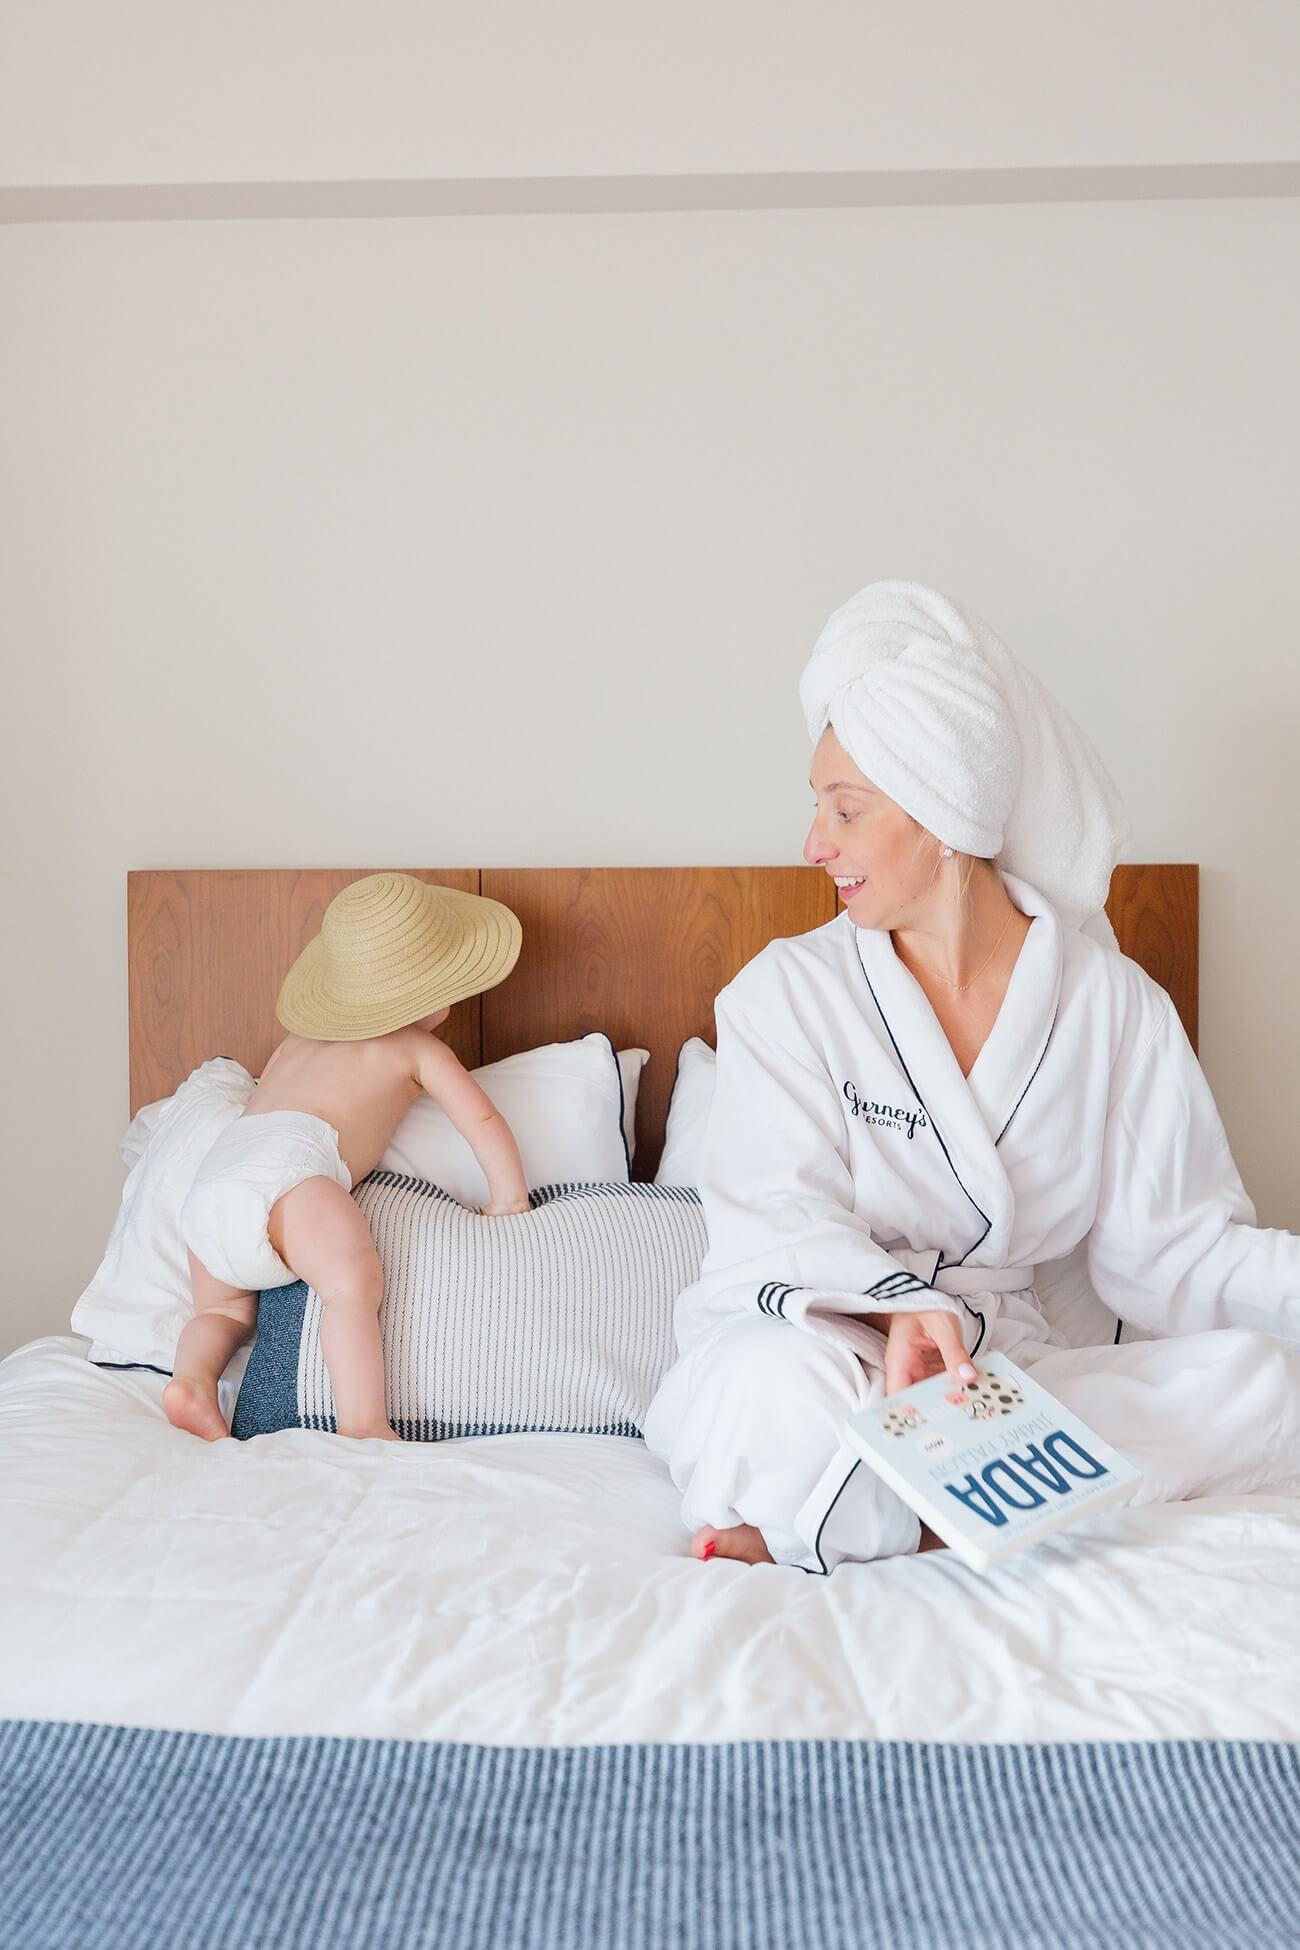 Baby proofing your hotel room or rental home is a must for traveling families.